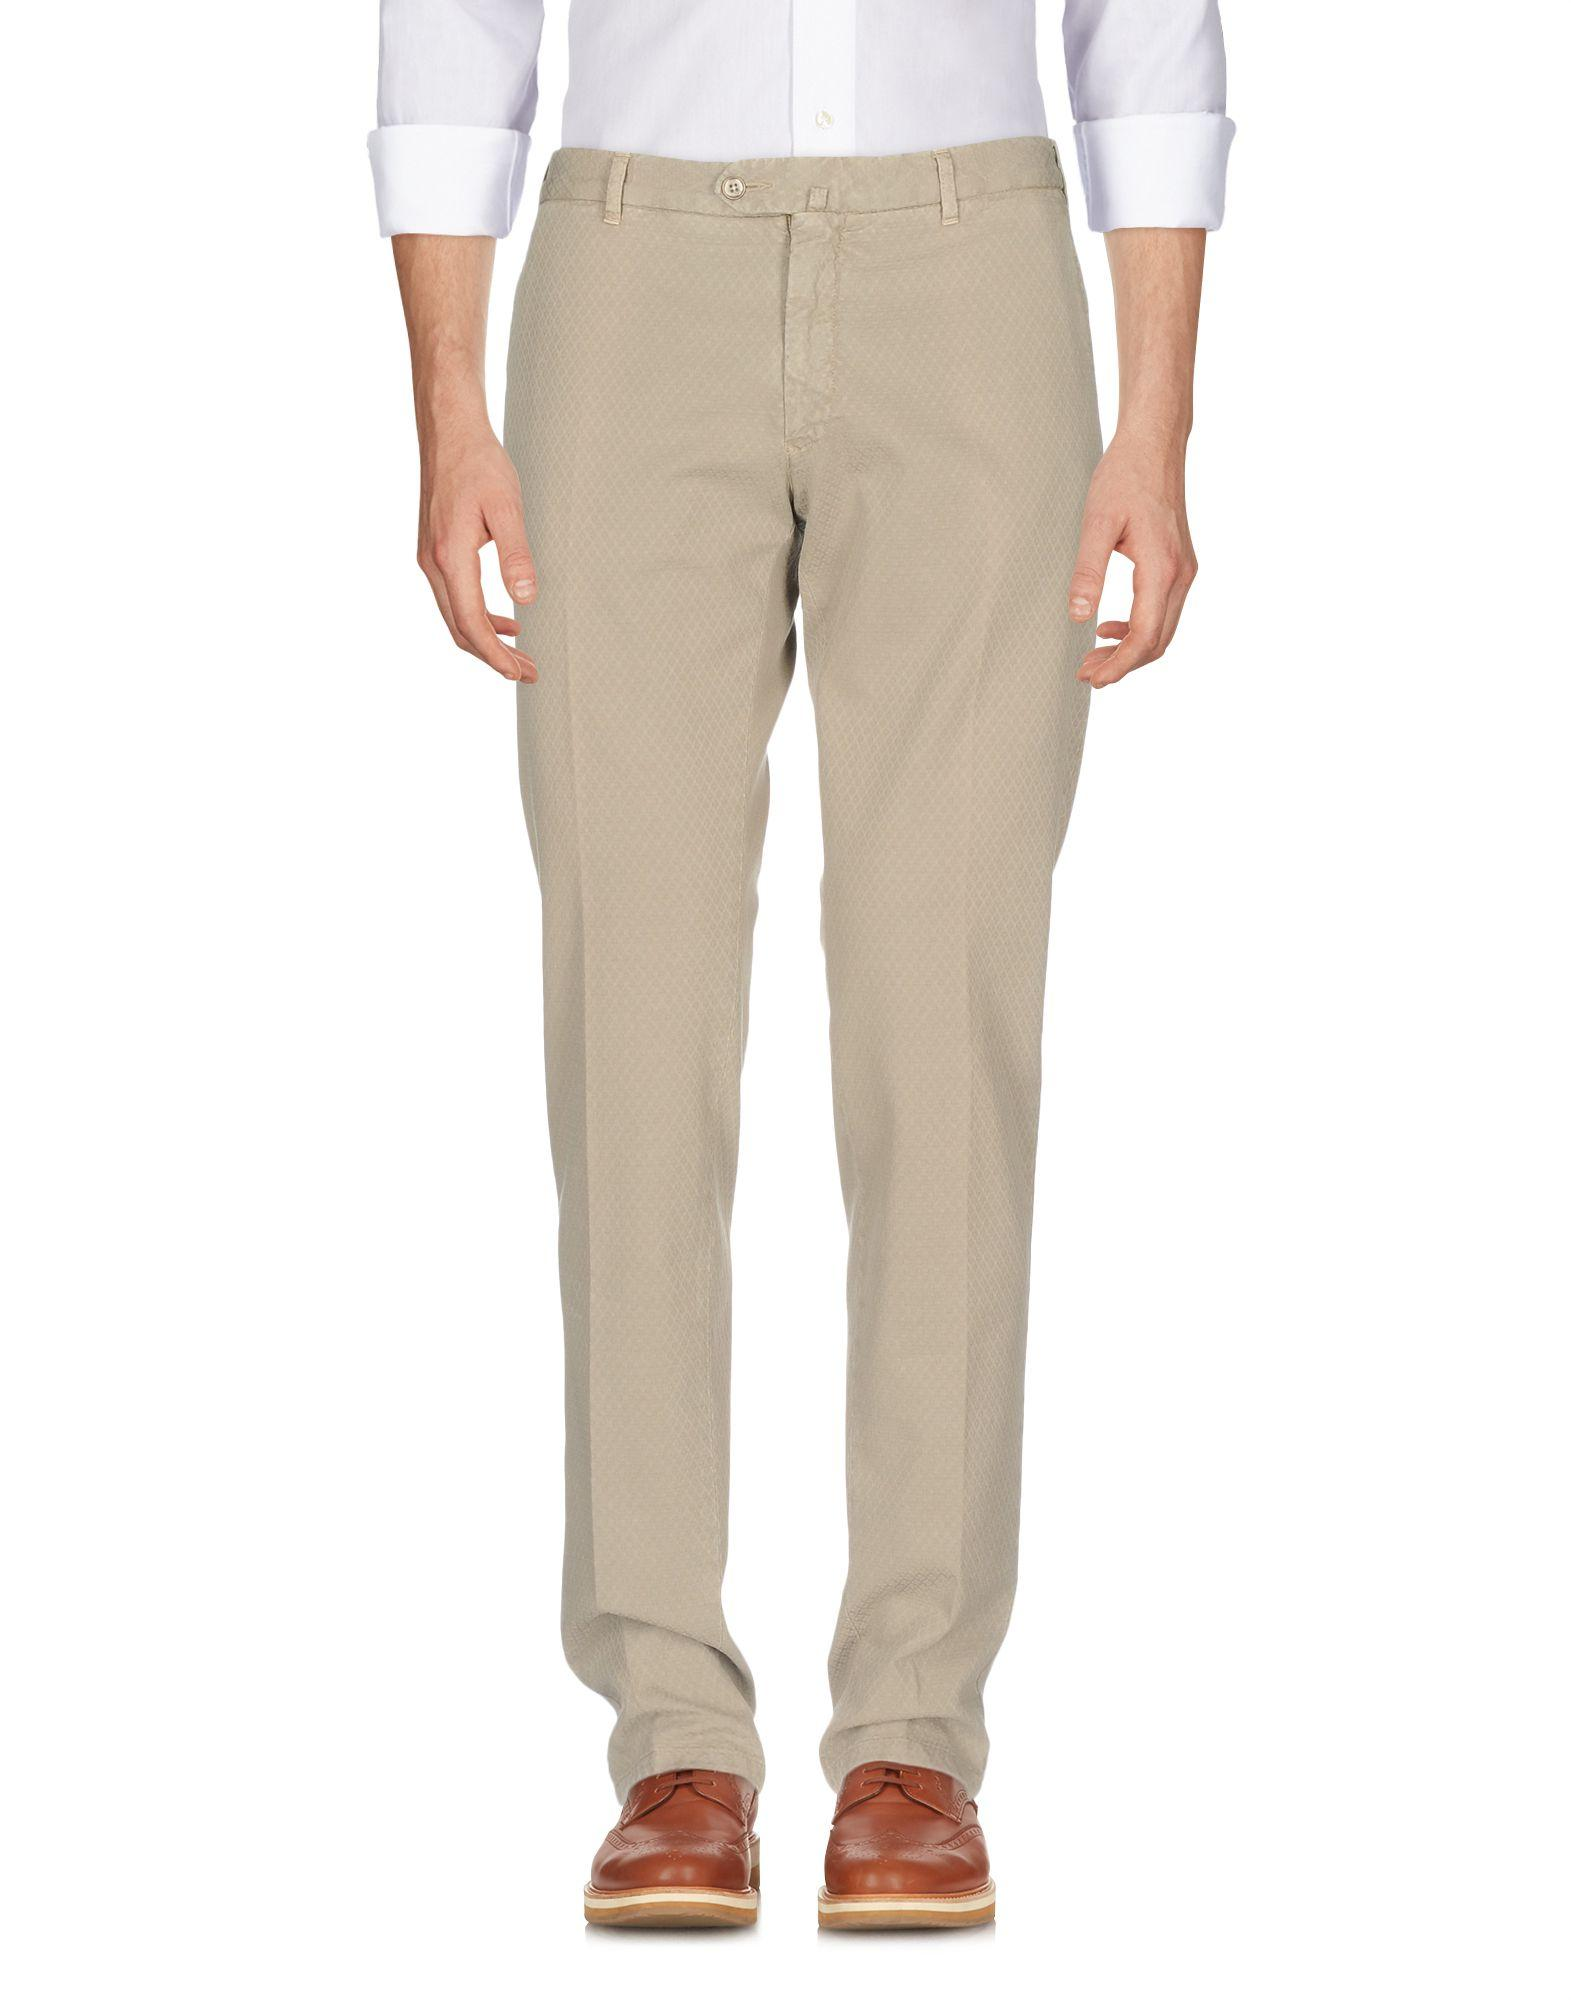 L.b.m. Casual Pants In Sand